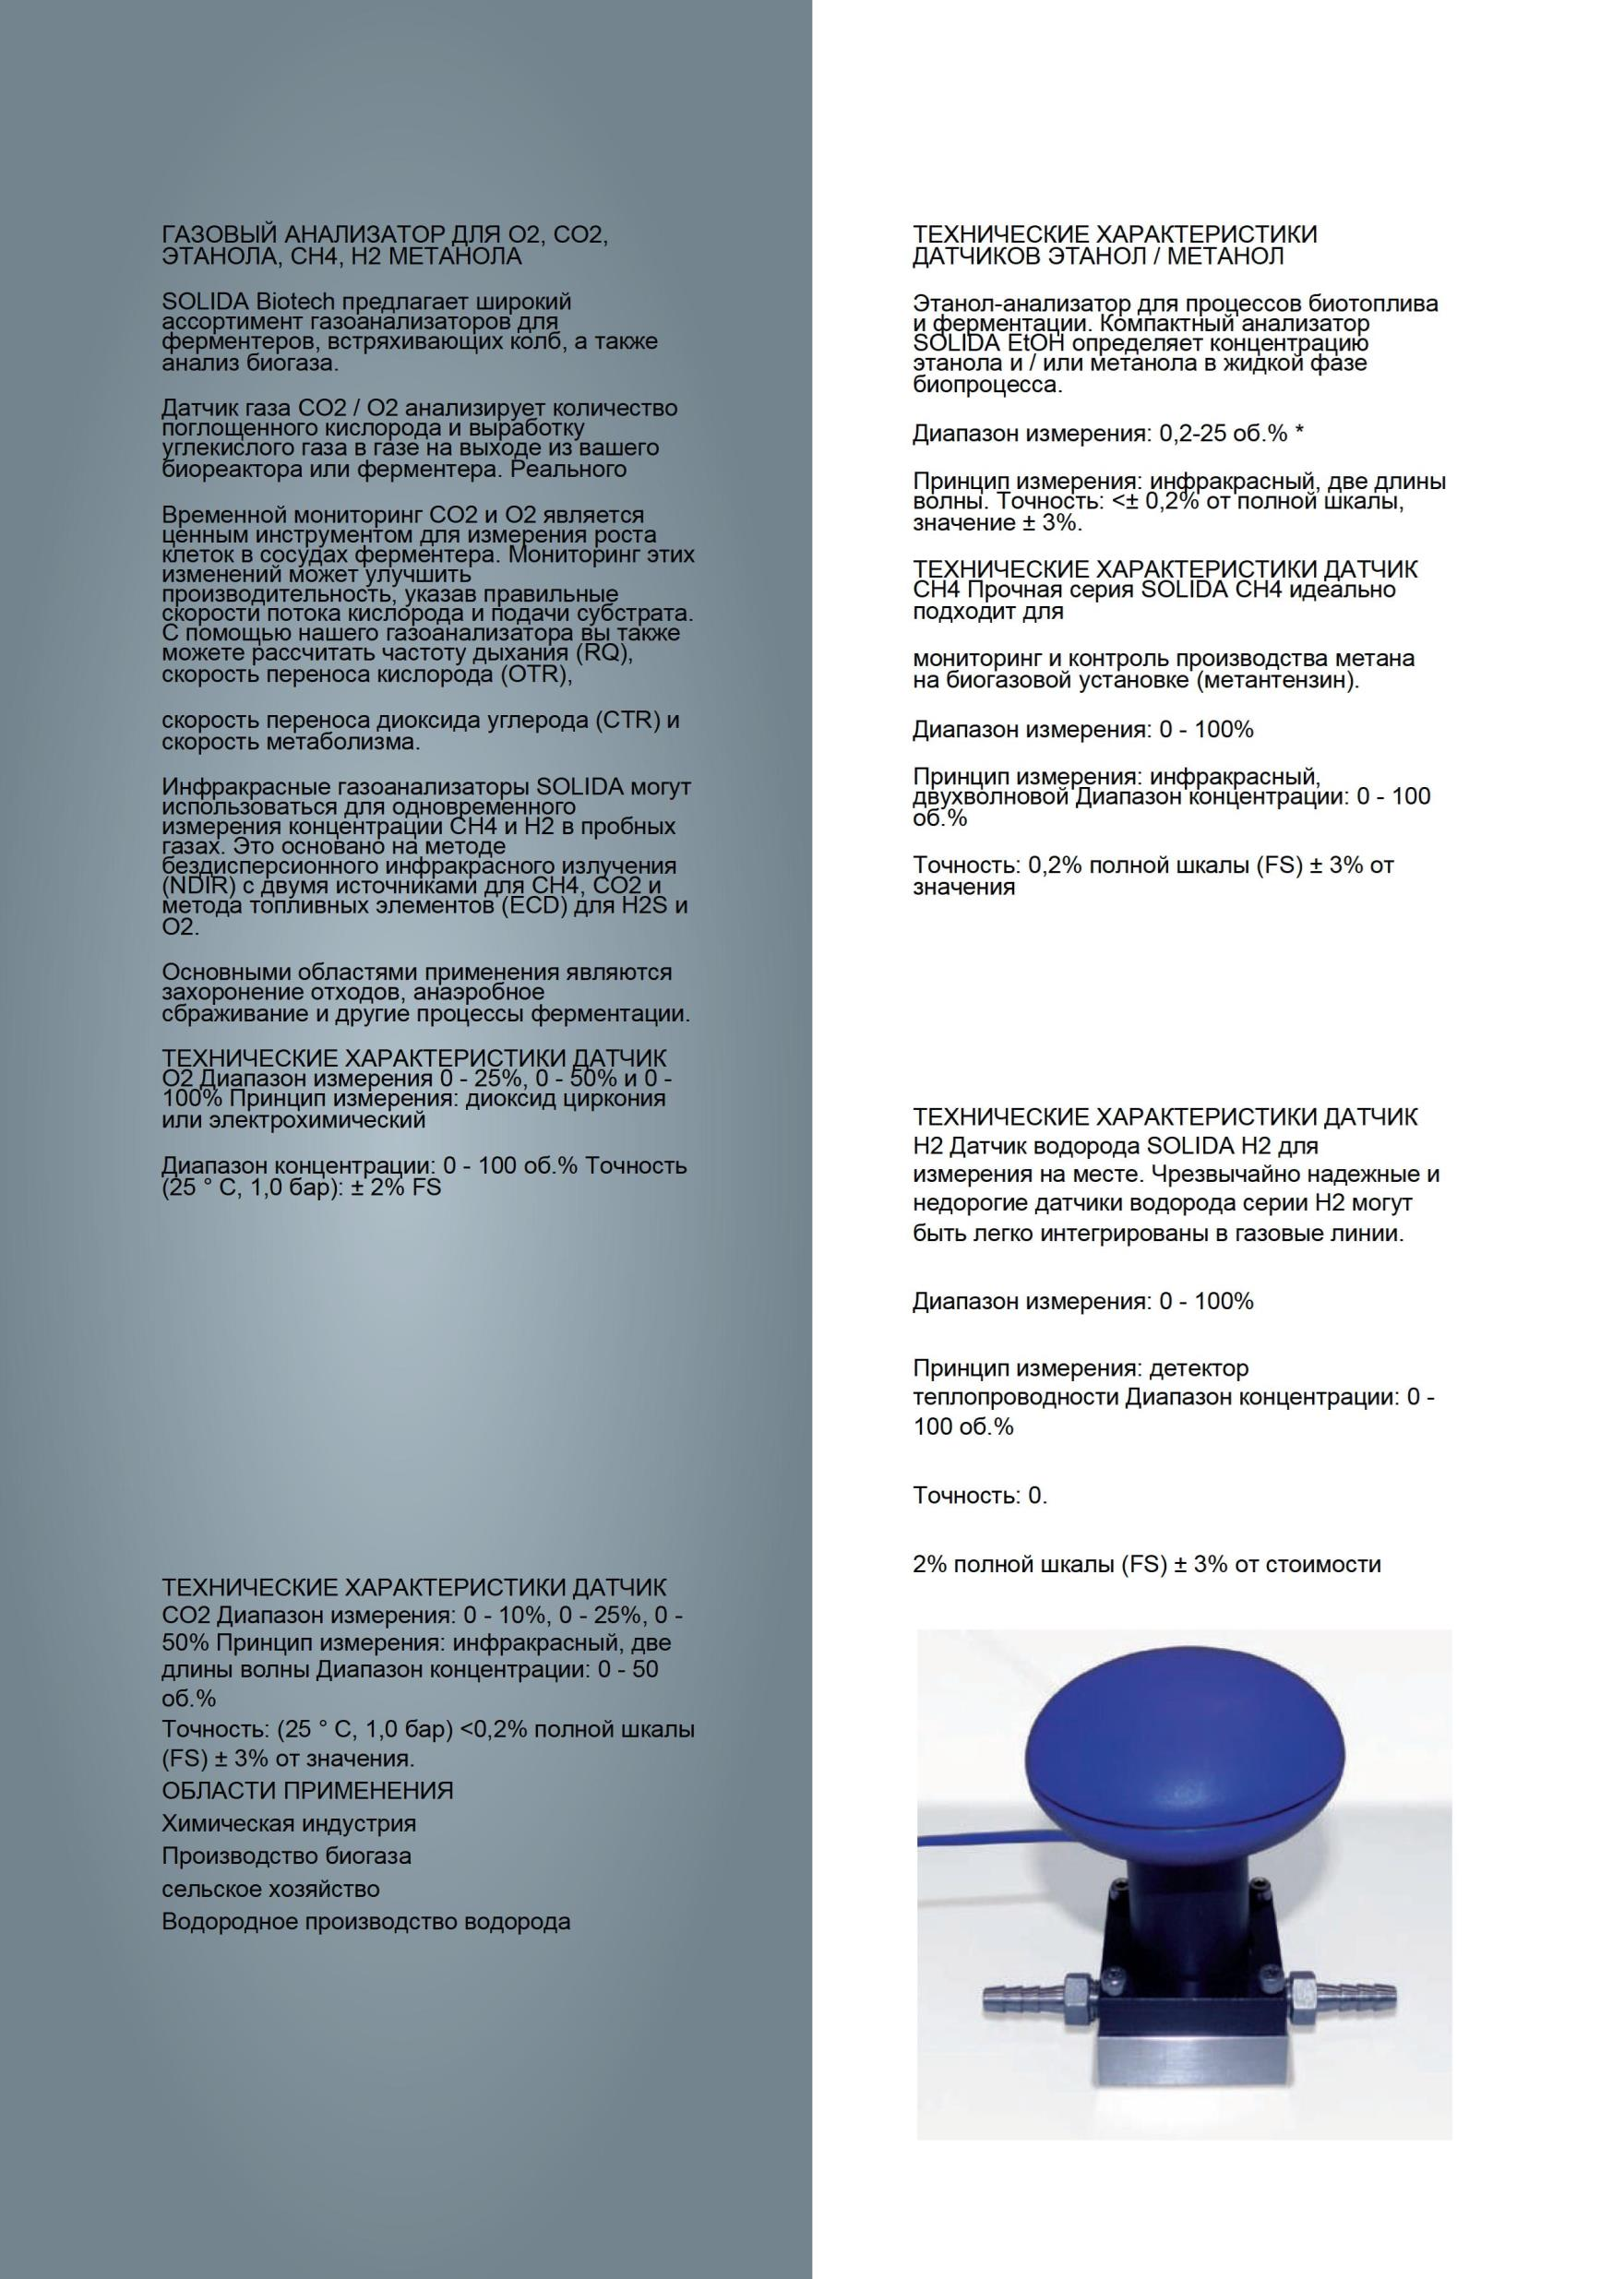 General Catalogue Solida Biotech GmBH2_compressed (2 - 0023